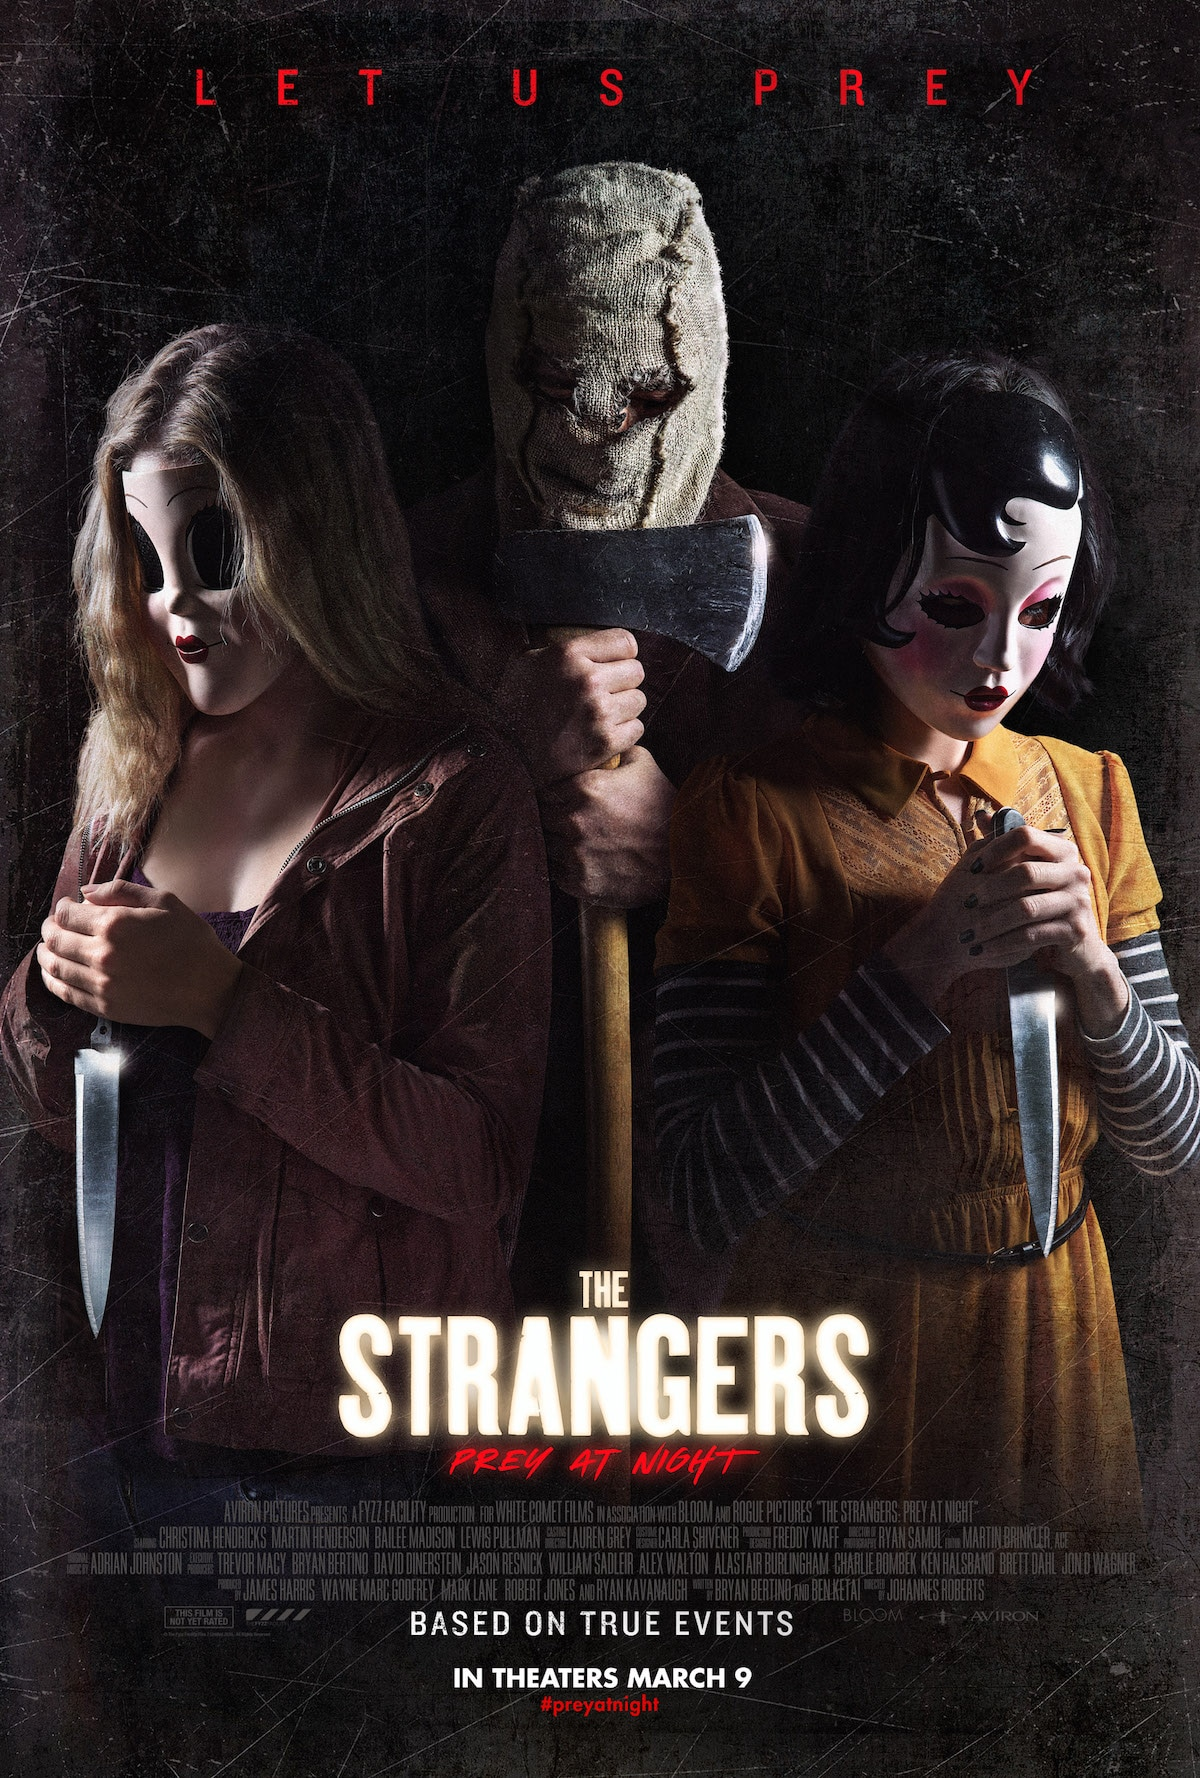 TheStrangersPreyAtNightPOSTER - The Strangers: Prey at Night Fan Art Contest Continues! Exclusive Image!